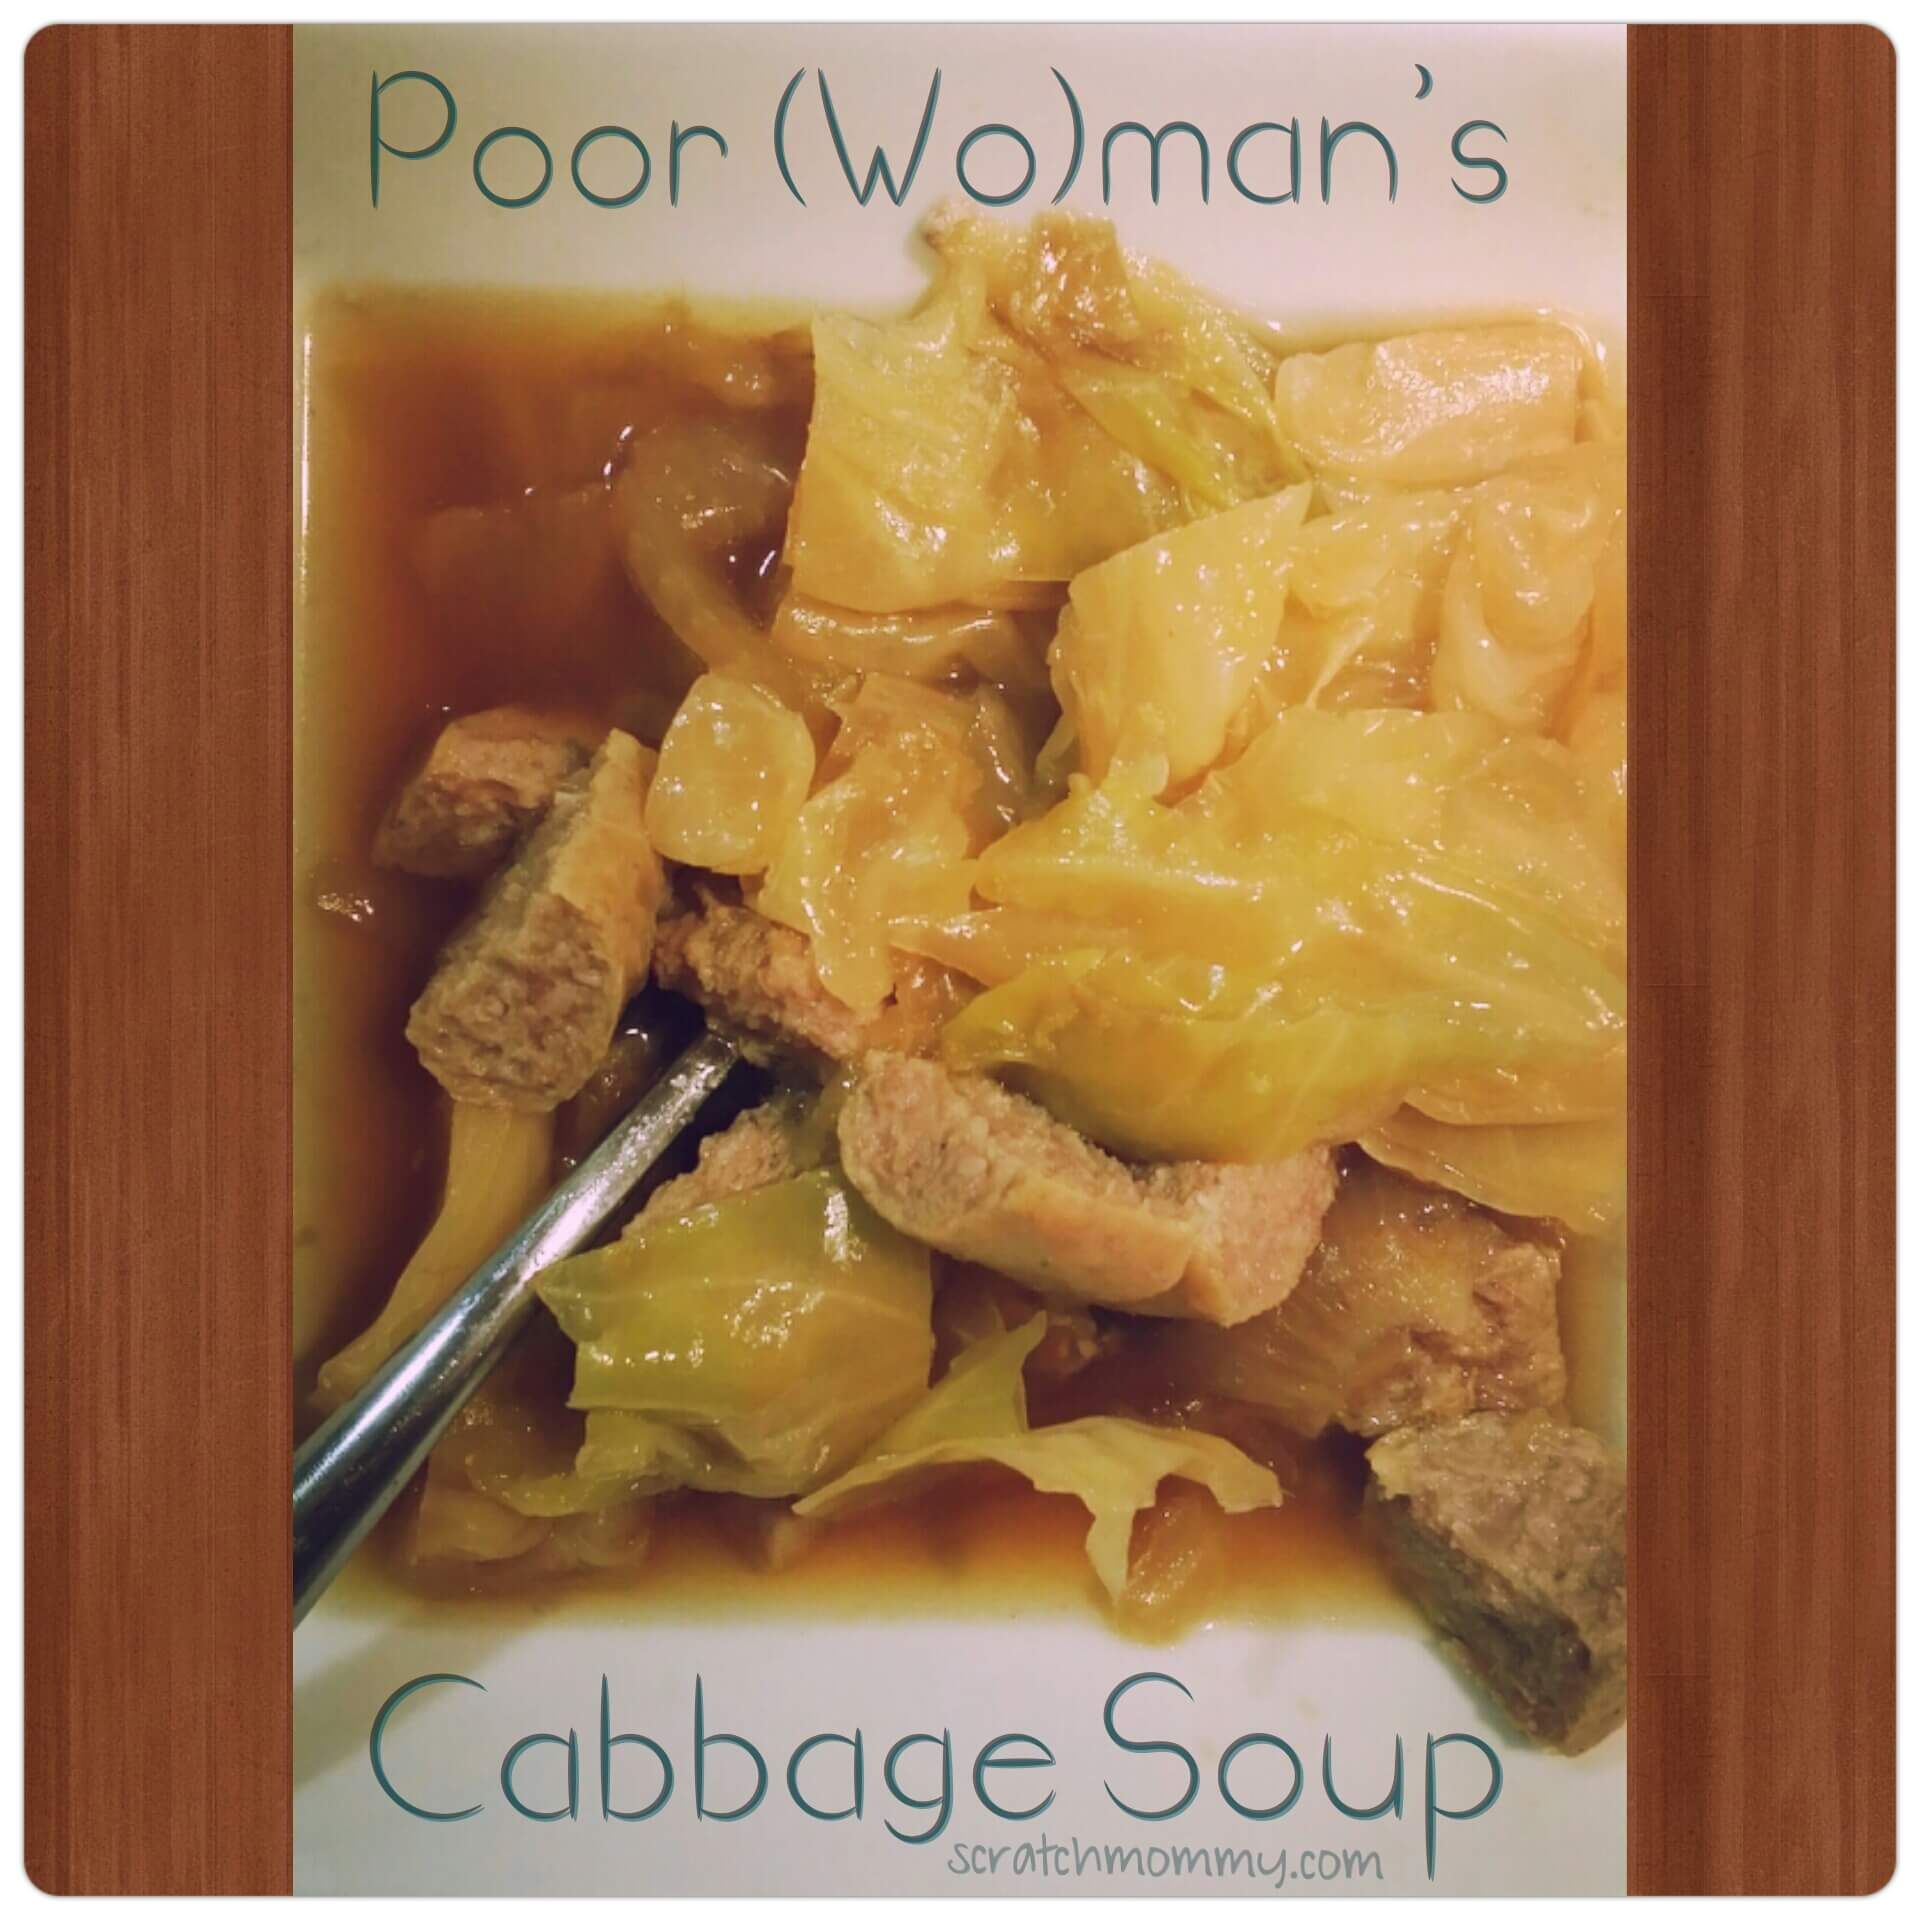 Poor (Wo)man's Cabbage Soup - Frugal & Nourishing Slow Cooker Meal